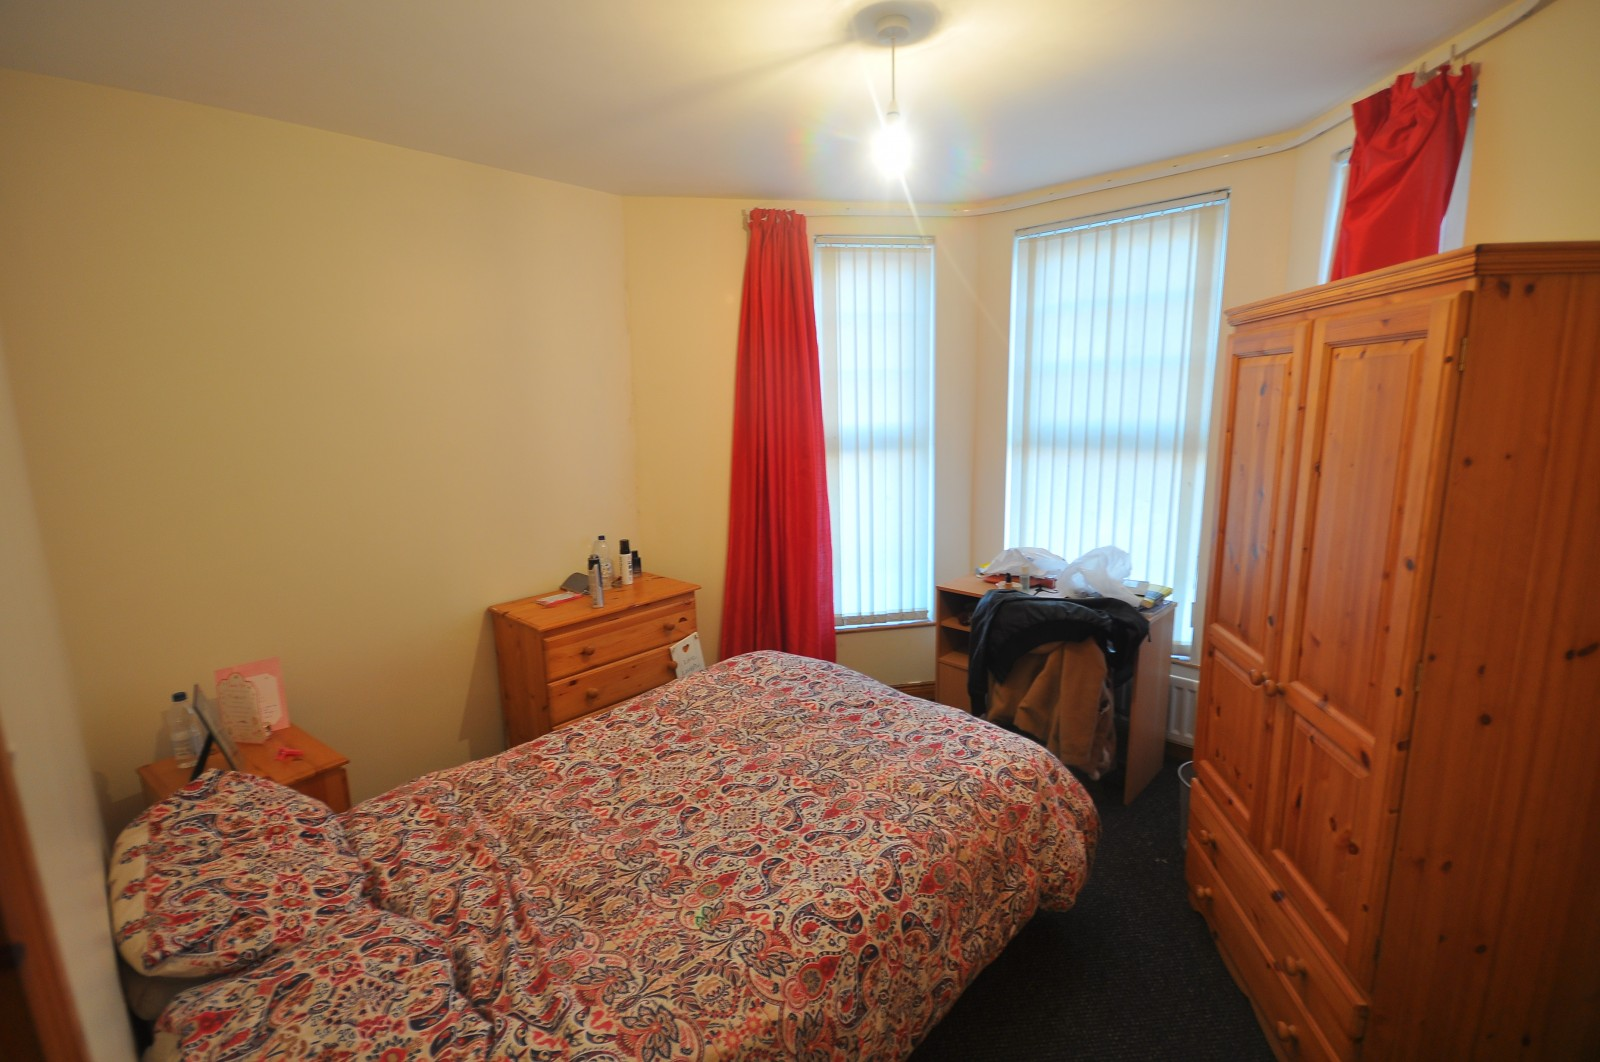 Flat 1, 97 University Avenue, Holylands, Belfast, BT7 1GX